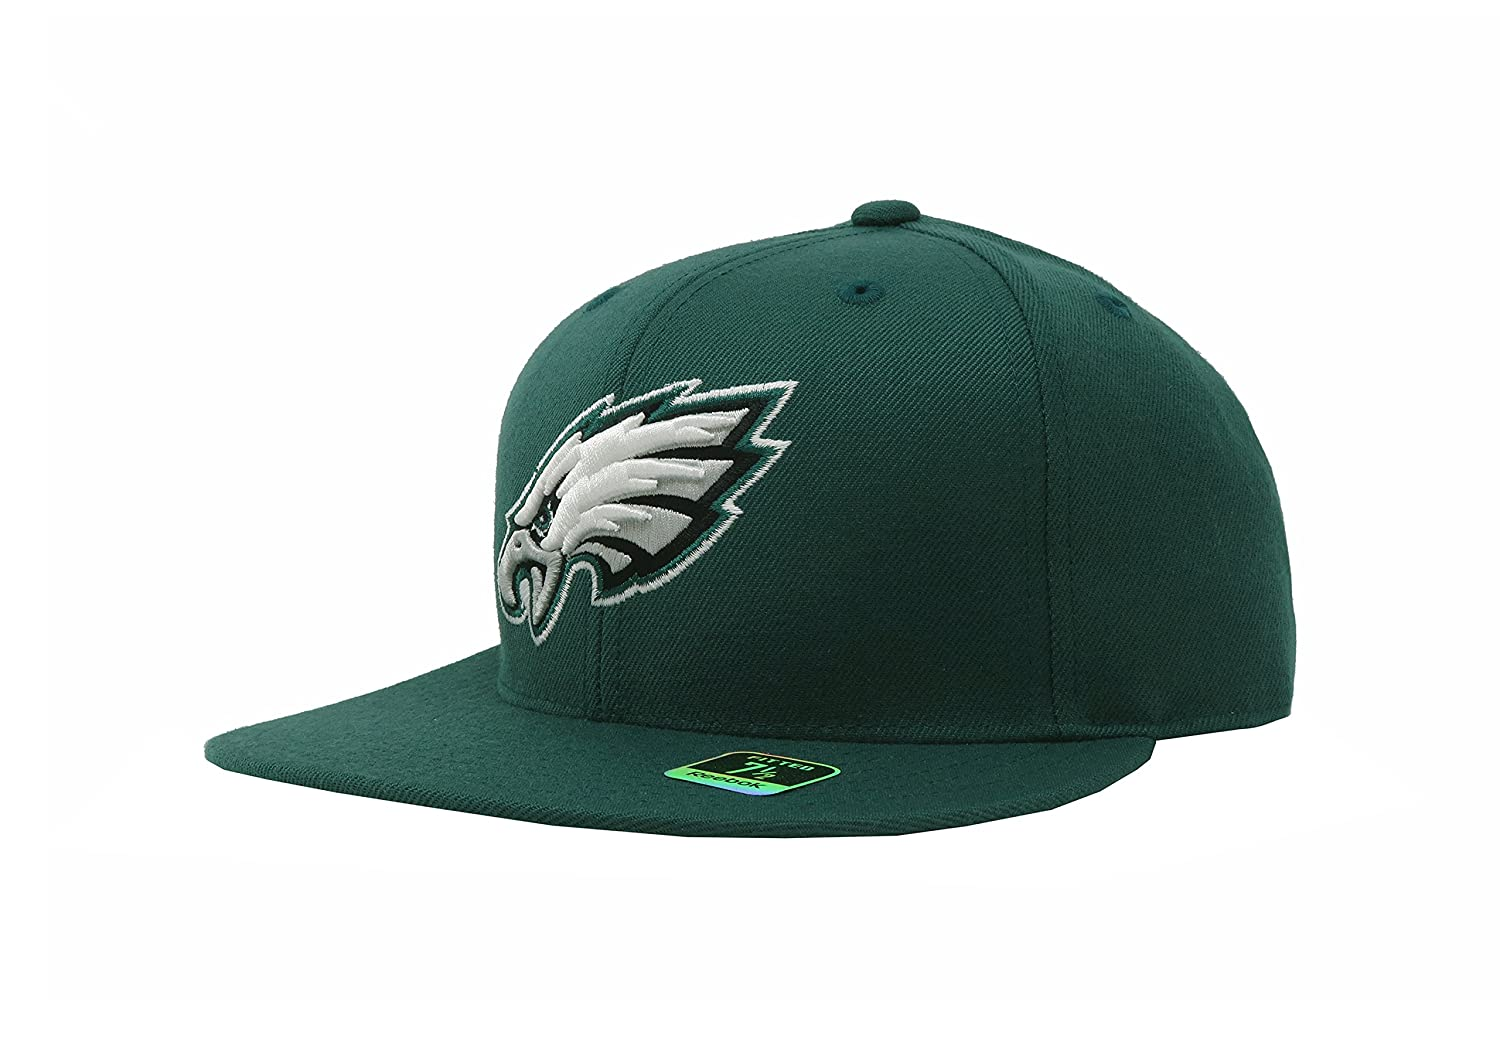 32ef351ca4c Amazon.com   Reebok Philadelphia Eagles Green Sideline Flat Bill Fitted Hat  (6 7 8)   Sports Fan Baseball Caps   Sports   Outdoors